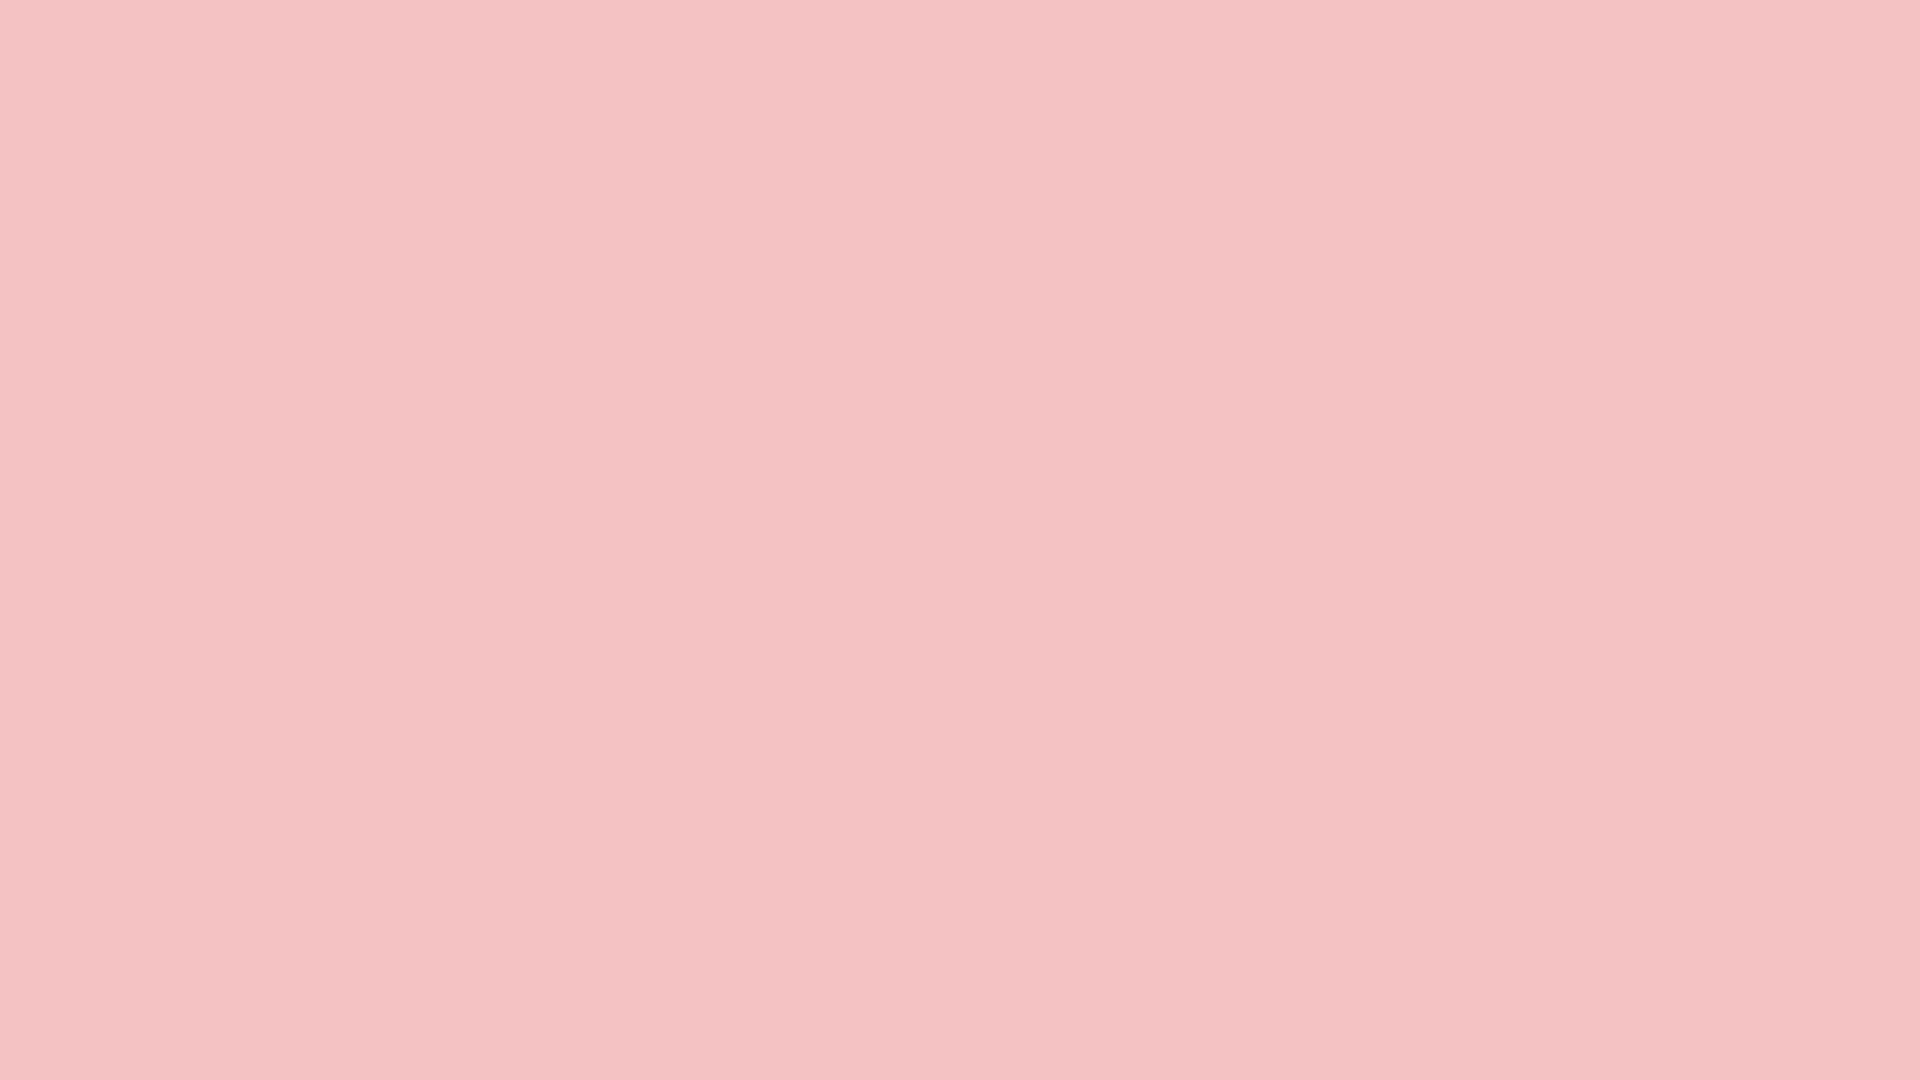 1920x1080 Baby Pink Solid Color Background